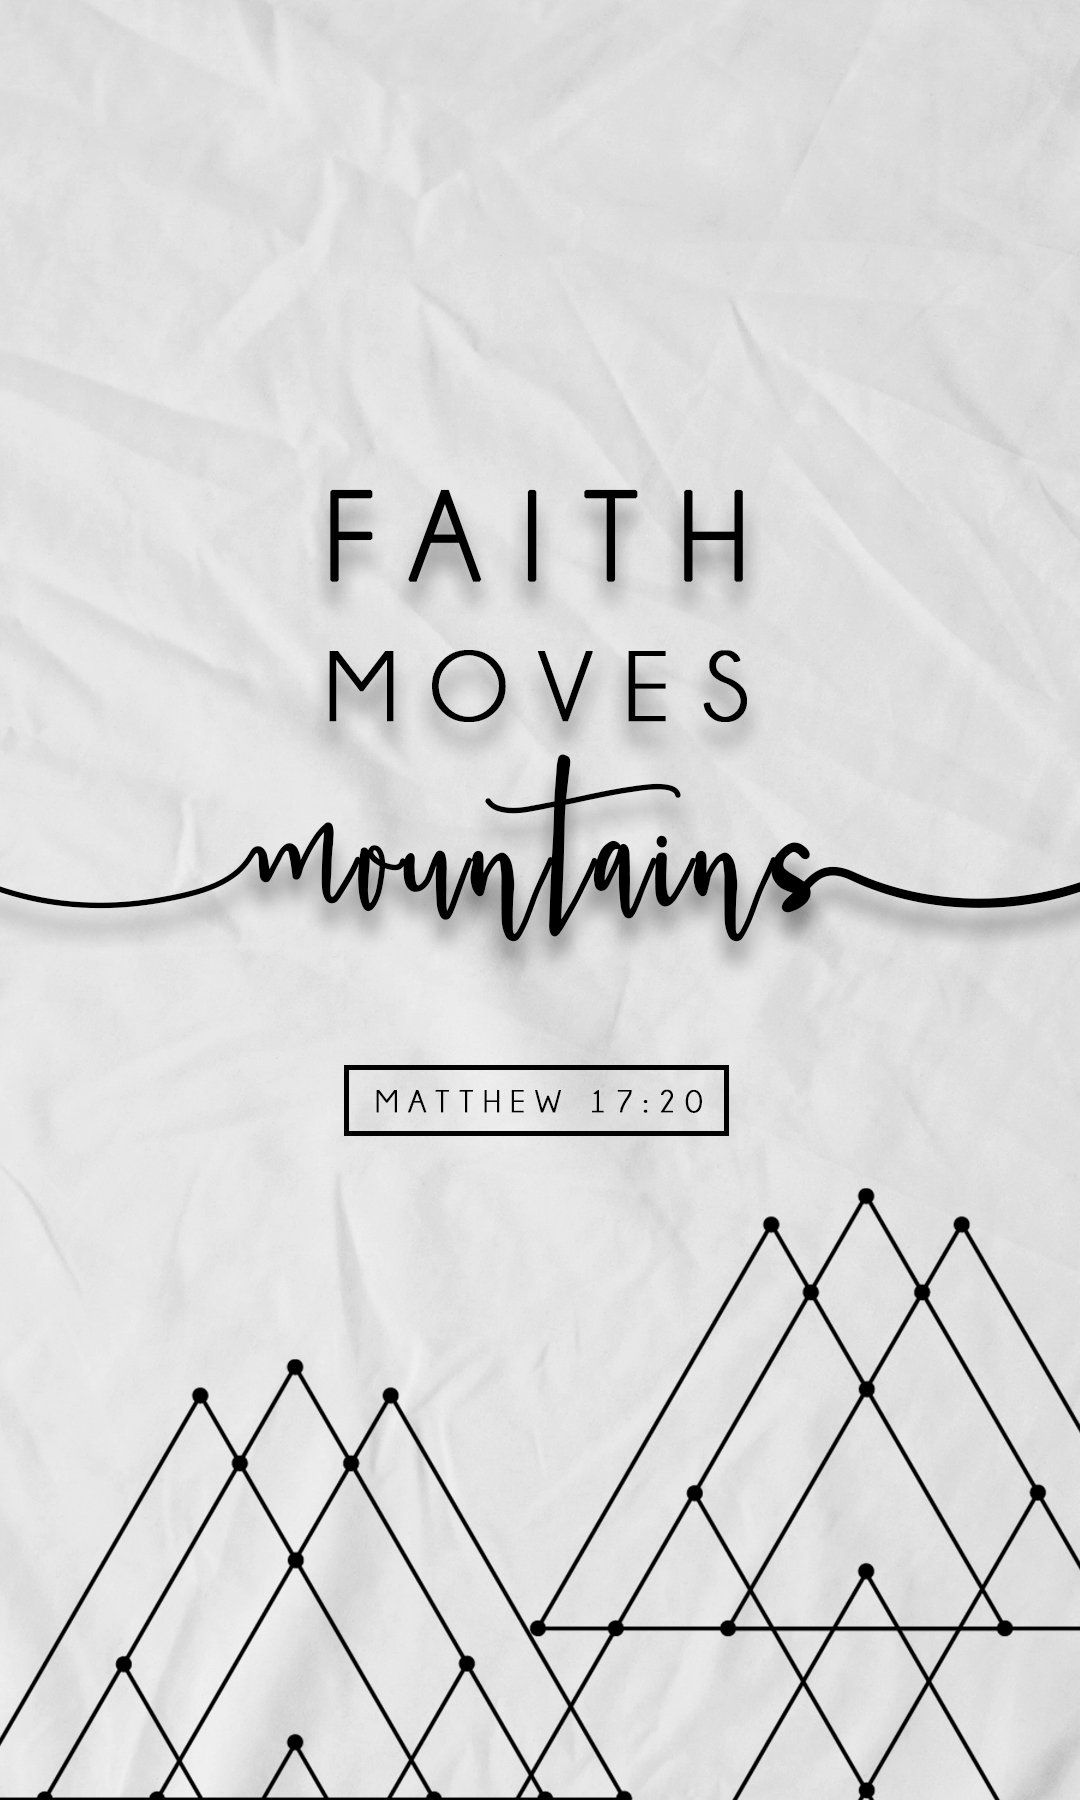 Bible Quotes Backgrounds Iphone 1080x1800 Download Hd Wallpaper Wallpapertip